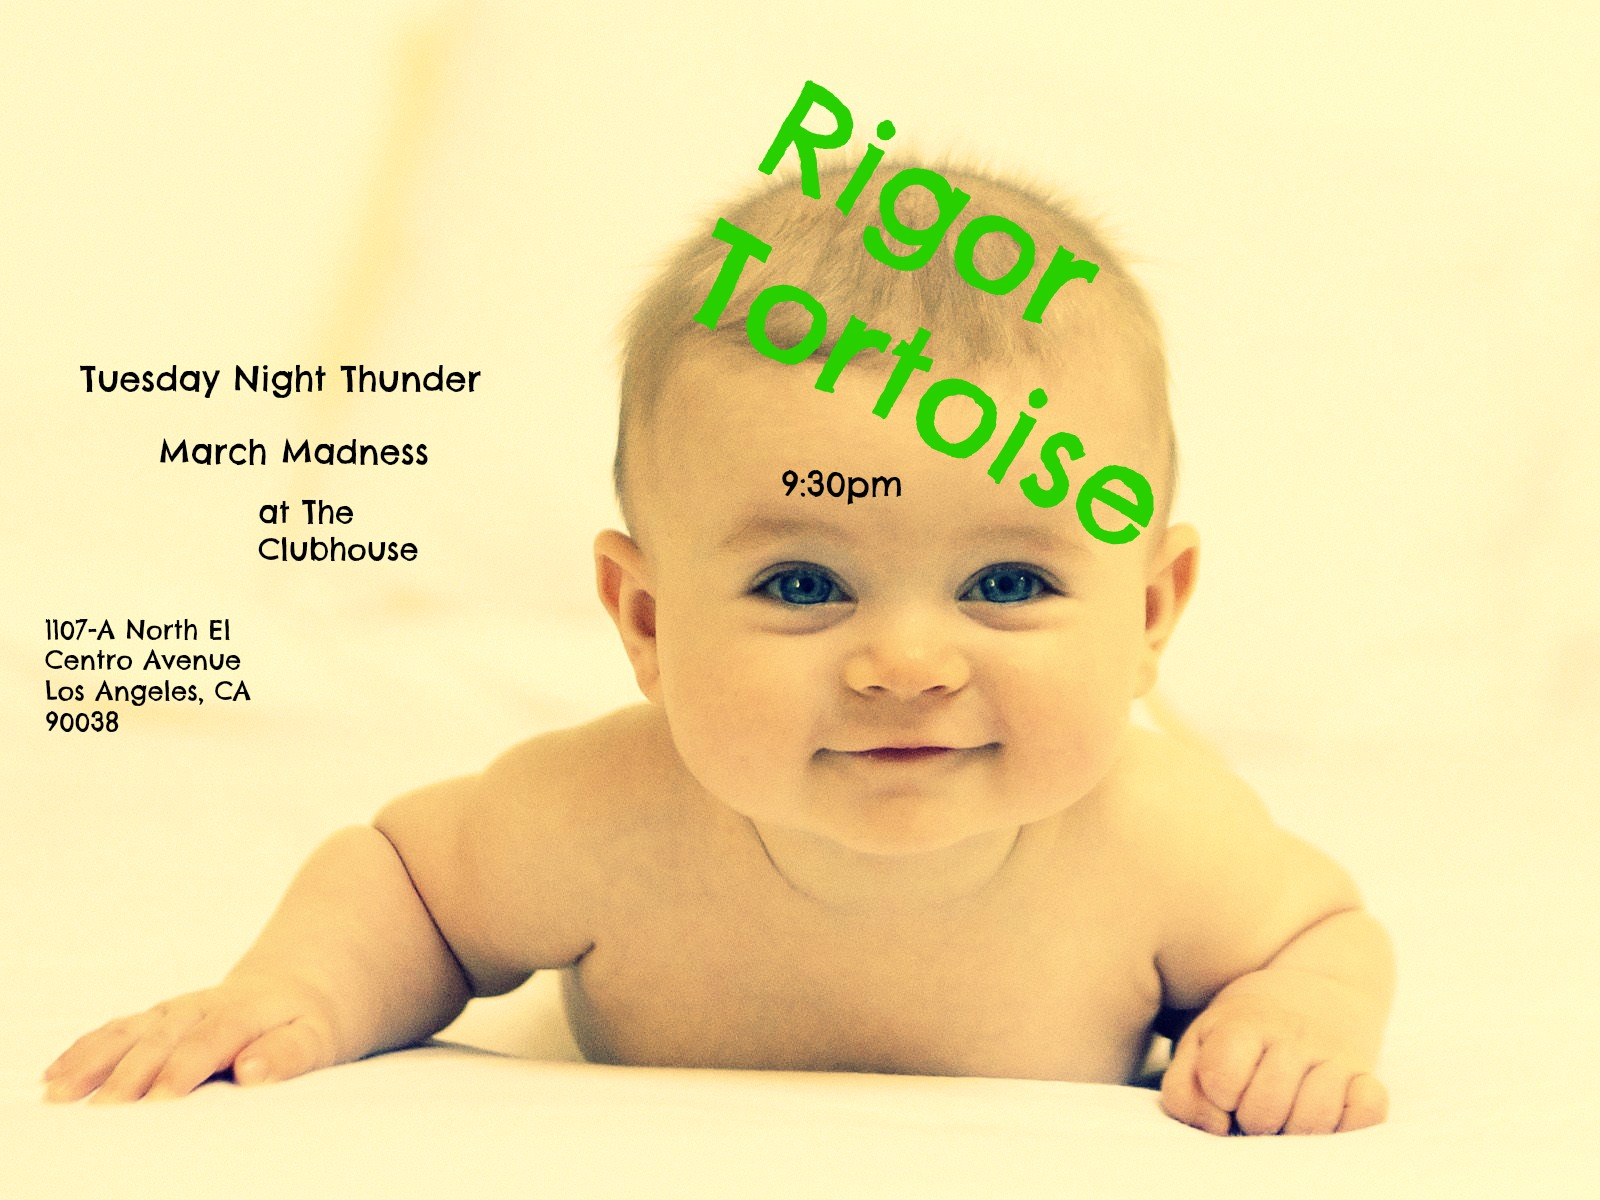 Rigor Tortoise - Tuesday Night Thunder - Live Improv